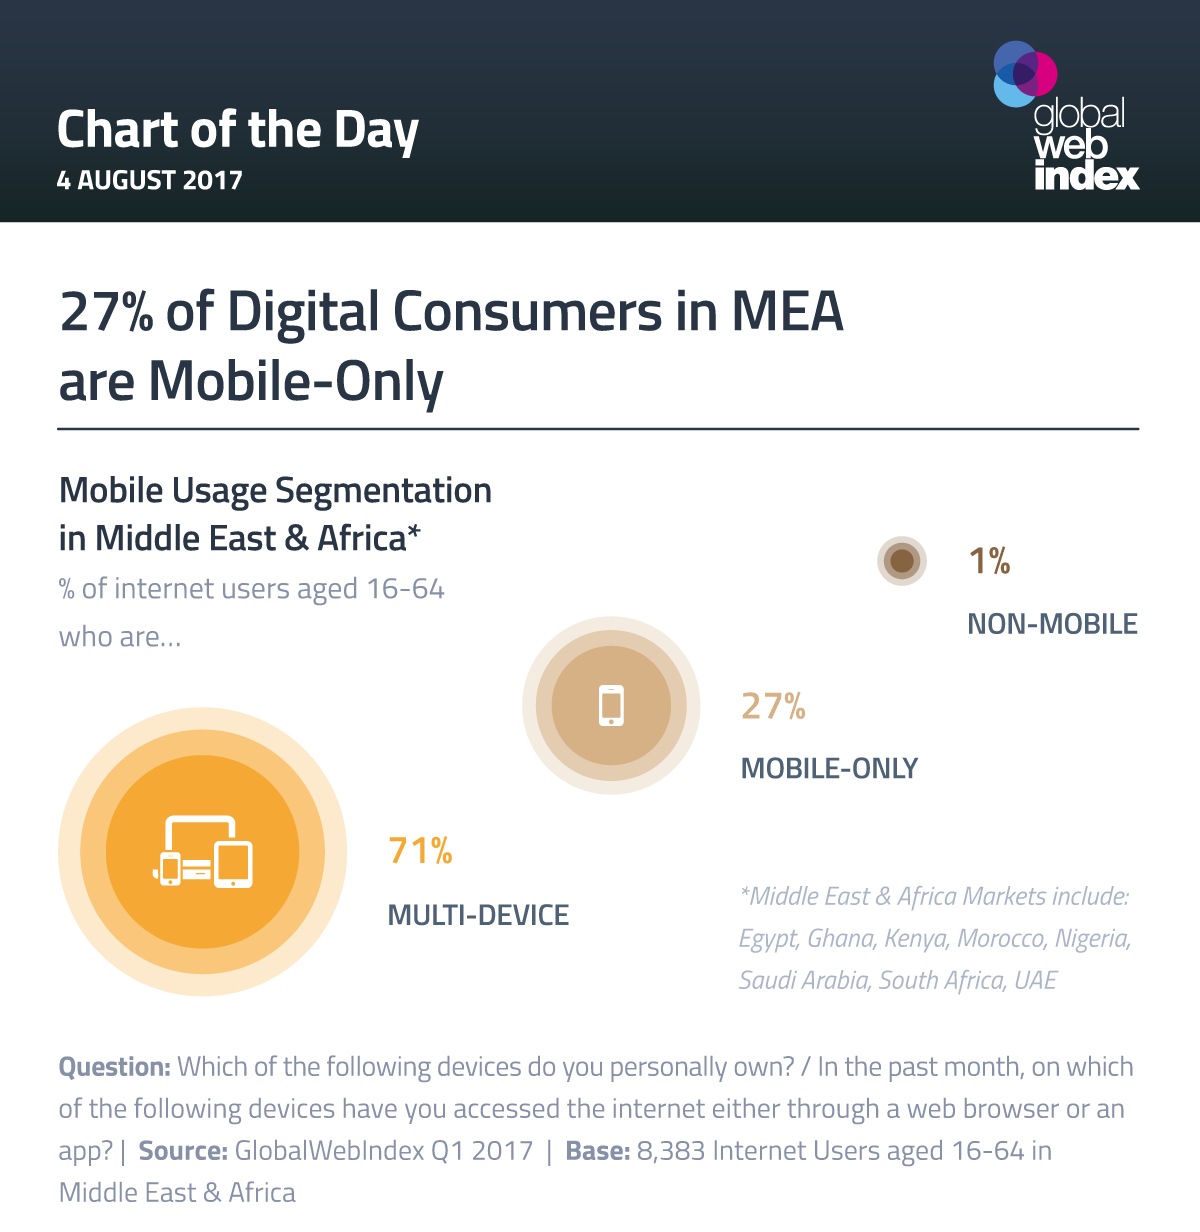 27% of Digital Consumers in MEA are Mobile-Only